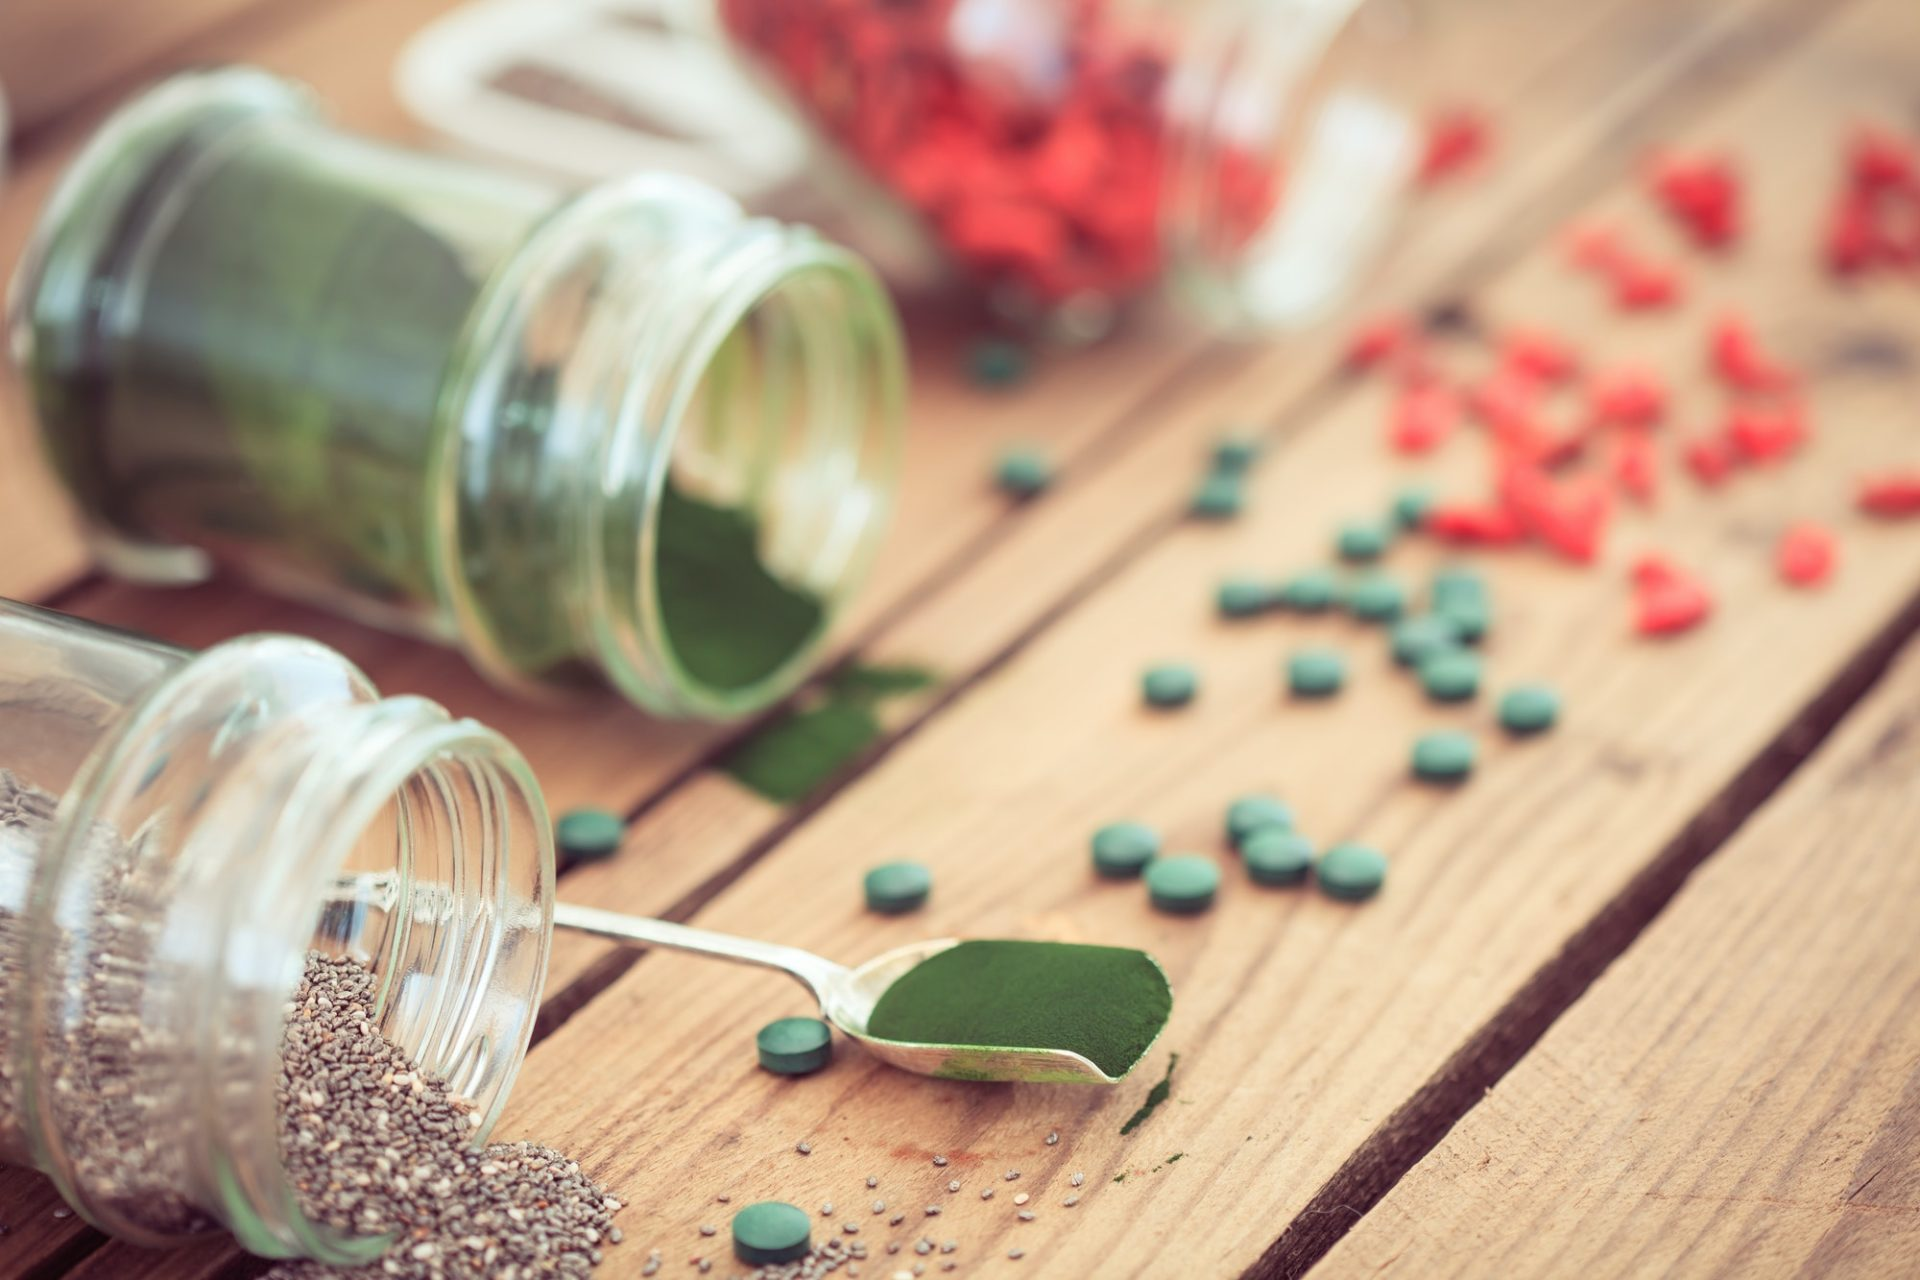 Goji, spirulina and chia seeds (superfood) on wooden tabe